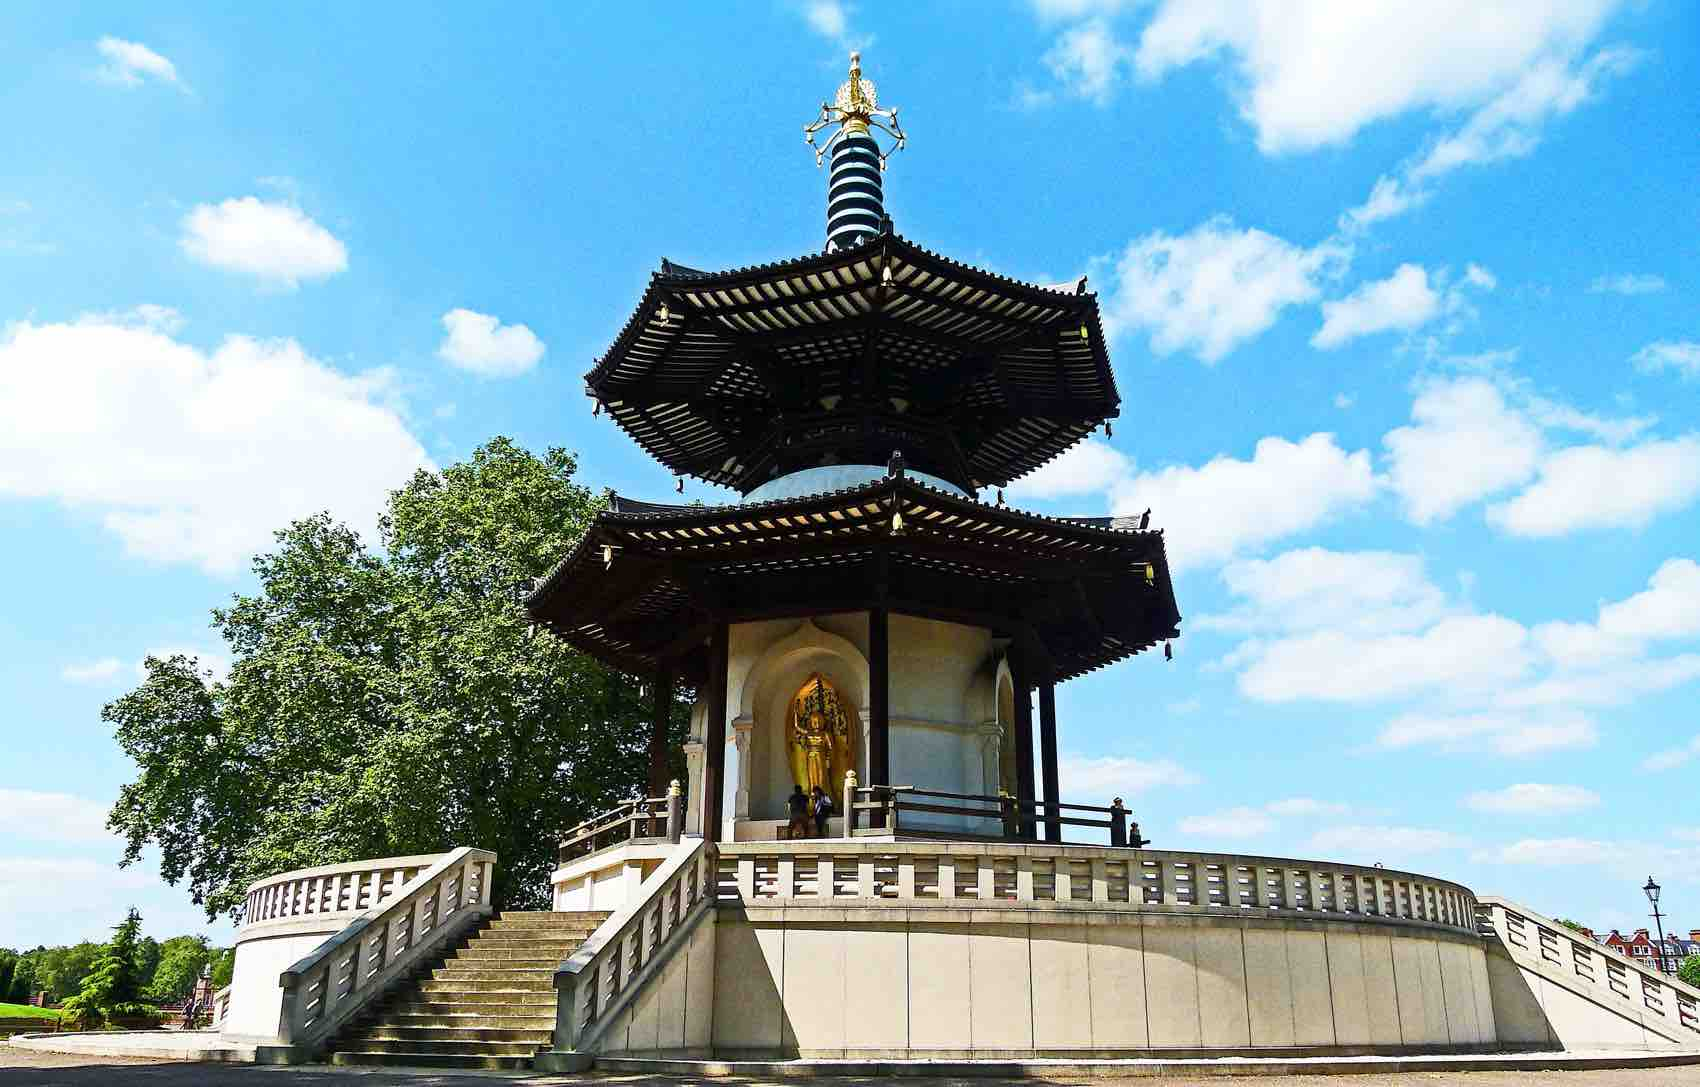 Battersea Park: Pagoda is a Buddhist stupa; a monument to inspire peace